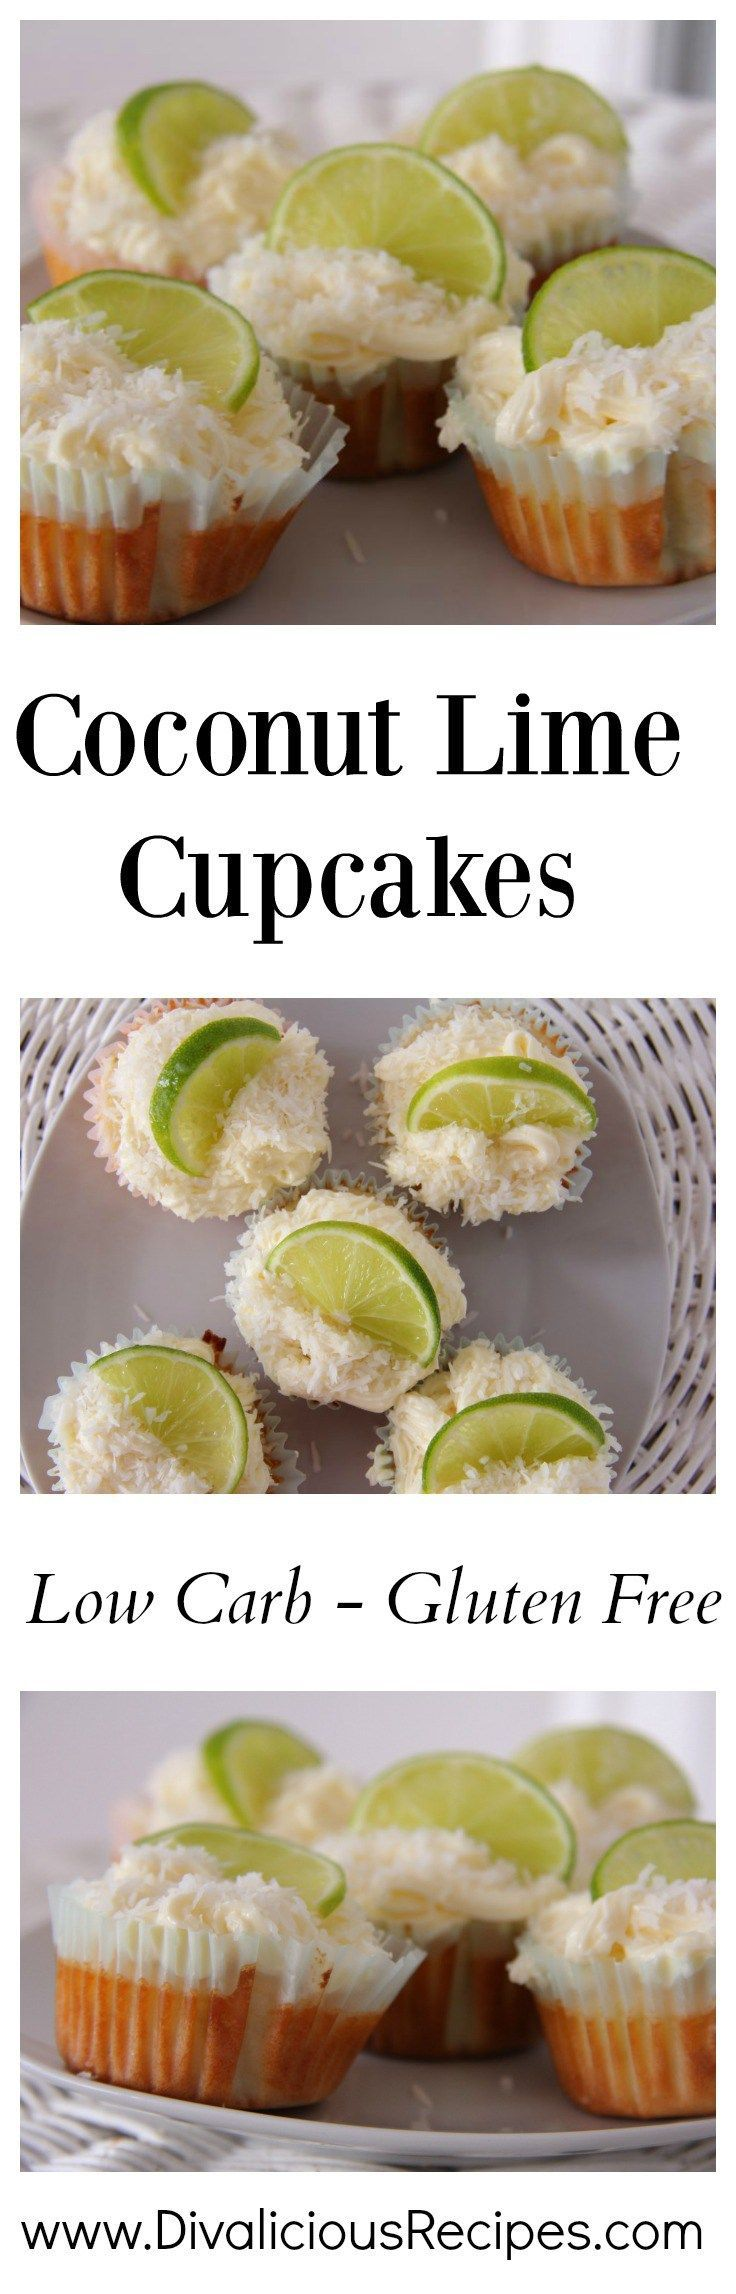 coconut lime cupcakes made with coconut flour.  Recipe - http://divaliciousrecipes.com/2014/11/14/coconut-lime-cupcakes-coconut-flour/